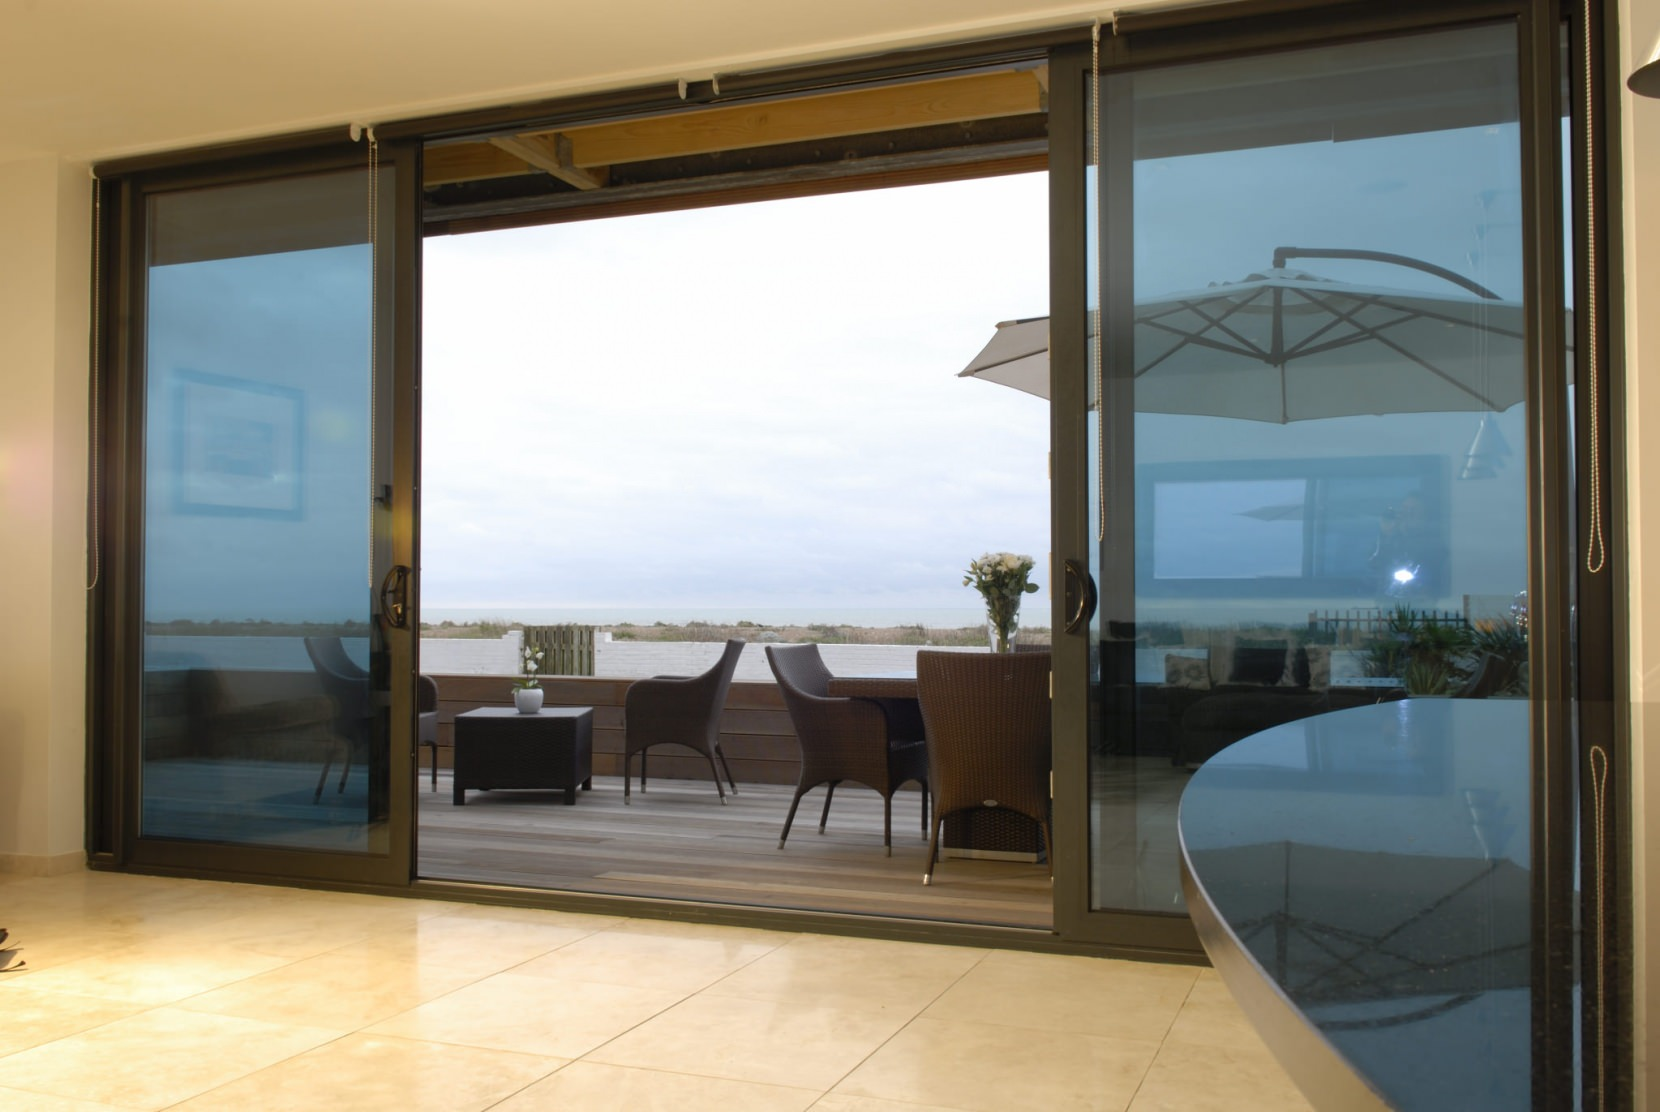 Aluminium Patio Doors Allestree